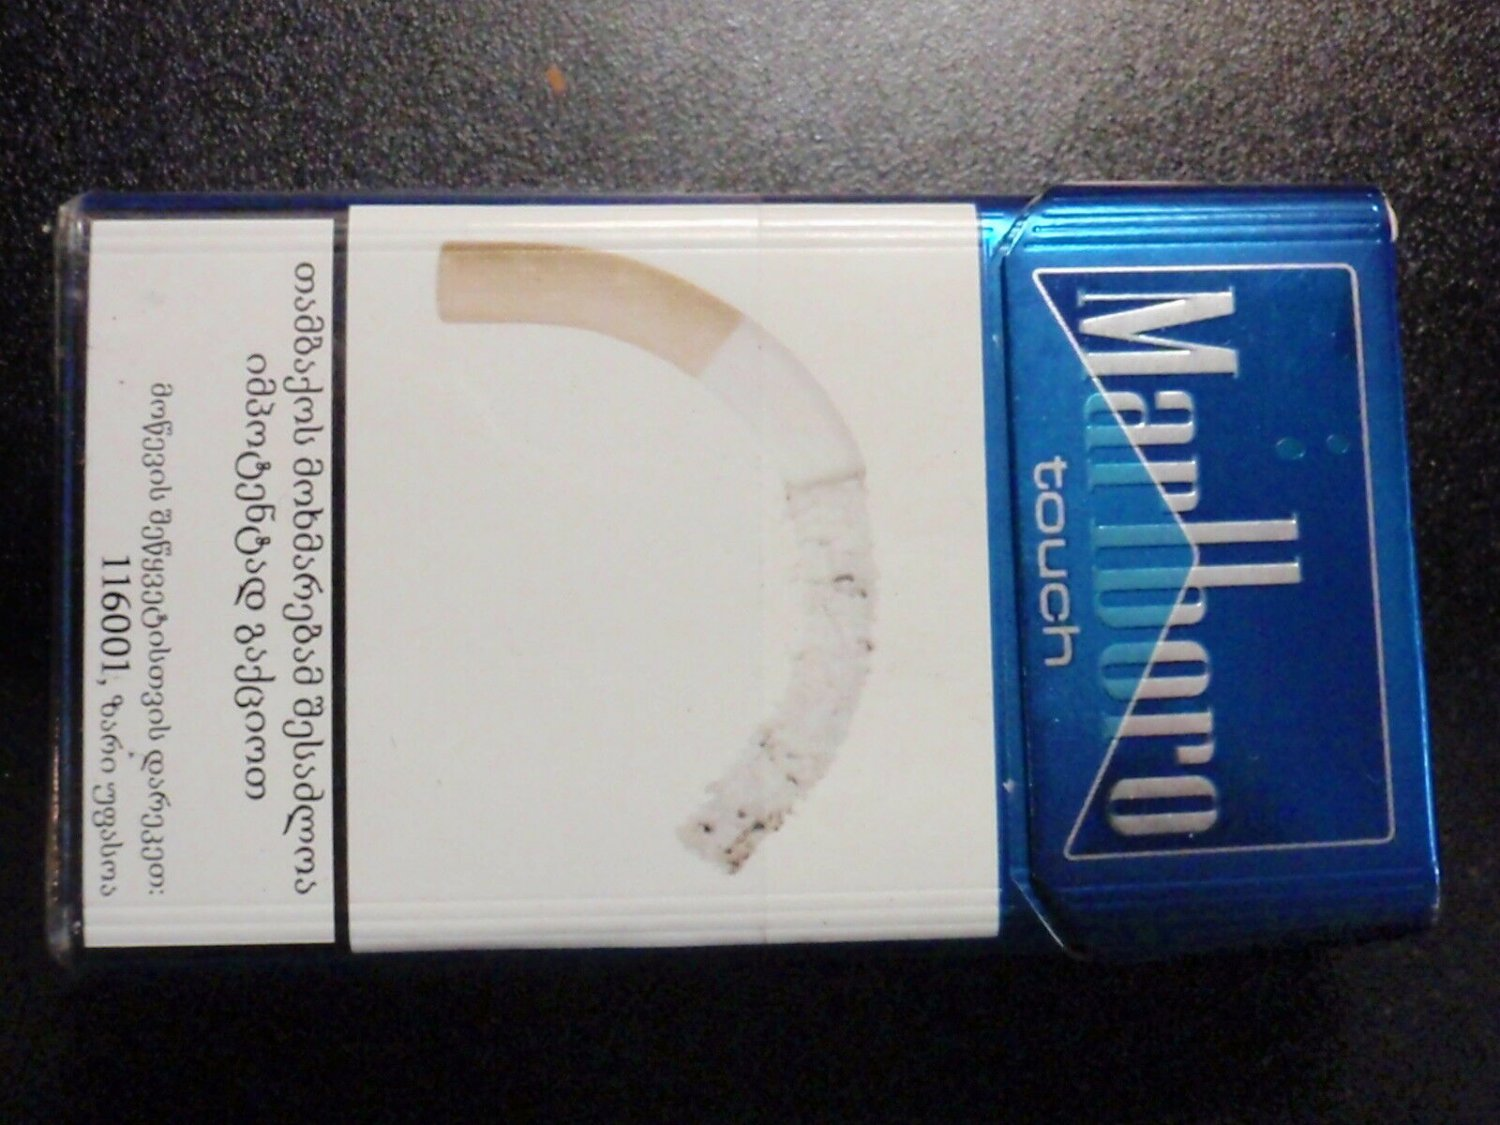 CIGARETTE BOX - EMPTY PACK - SRI LANKA MARLBORO TOUCH - Pristine - EMPTY